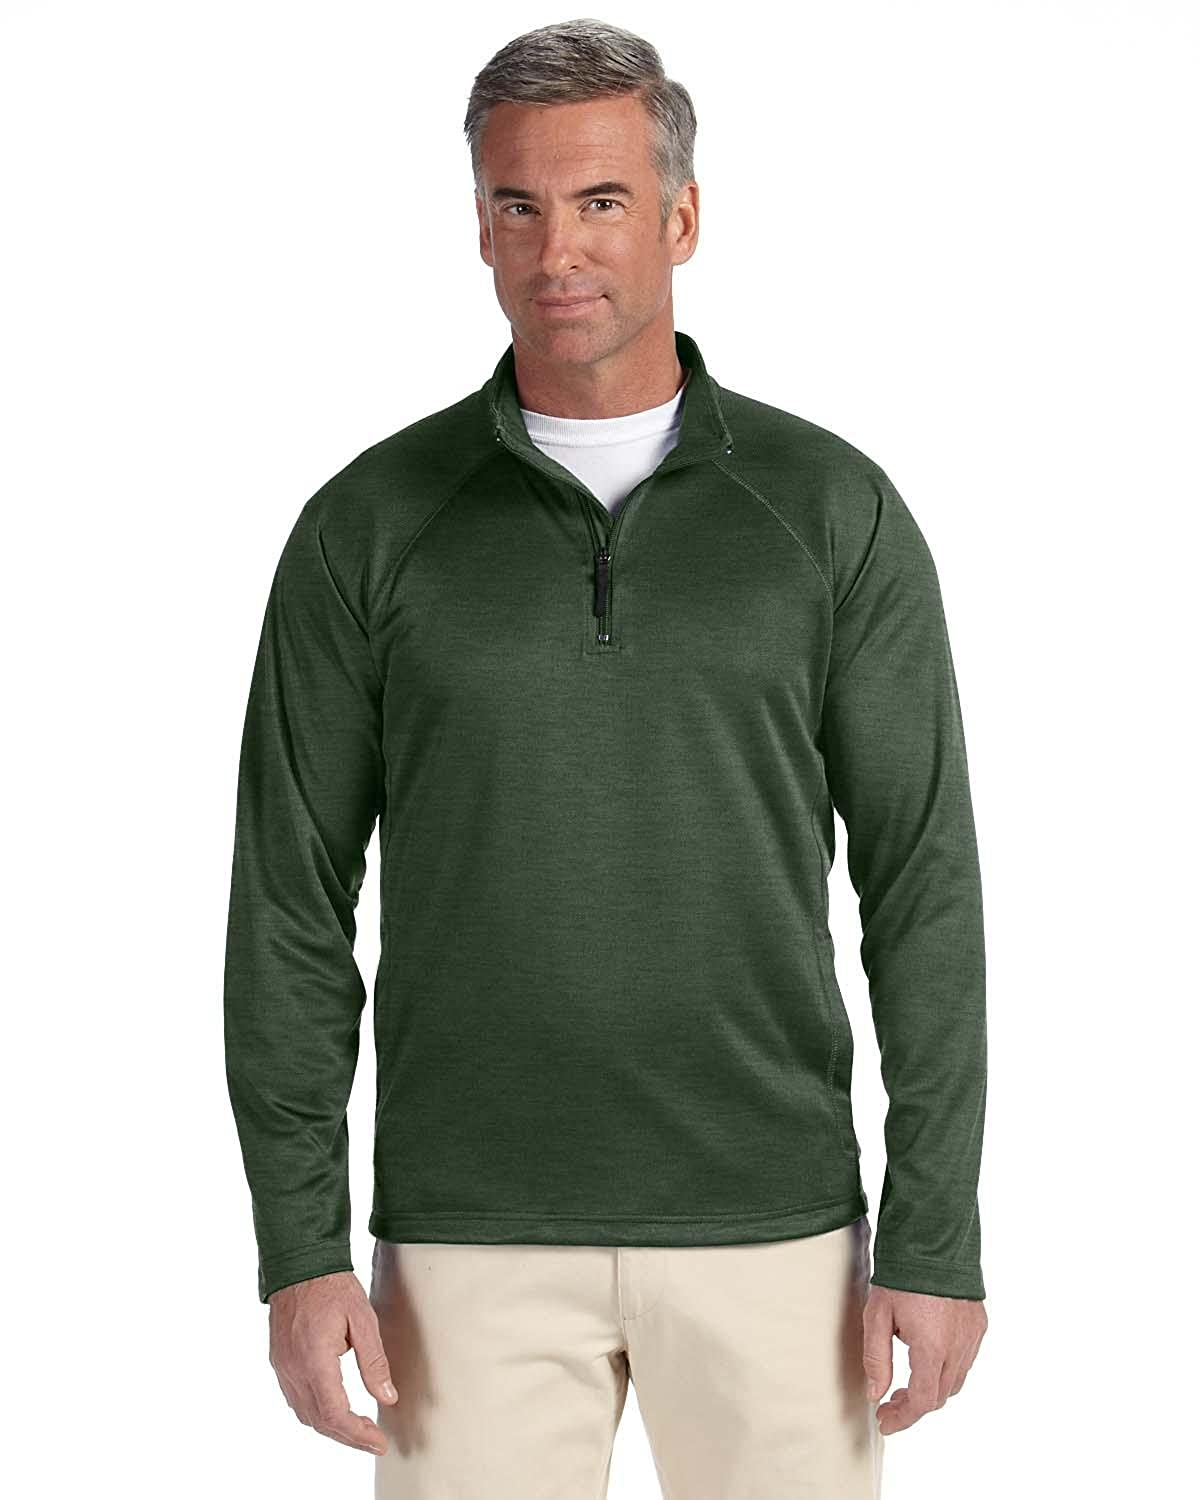 Devon /& Jones Mens Stretch Tech-Shell Compass Quarter-Zip3XL FOREST HEATHER